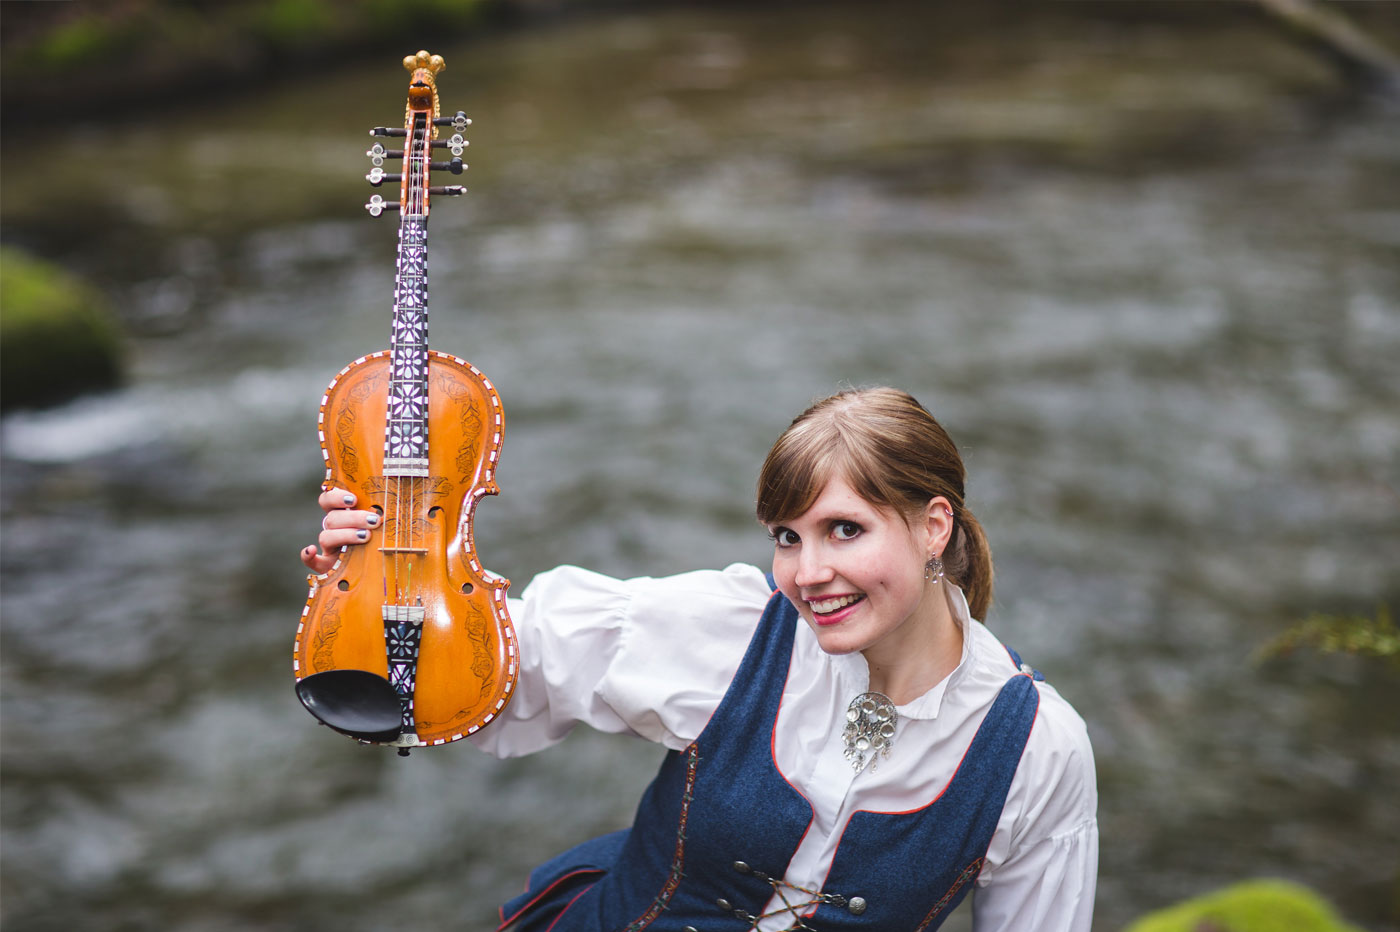 Rachel Nesvig in a traditional bunad playing Hardanger fiddle